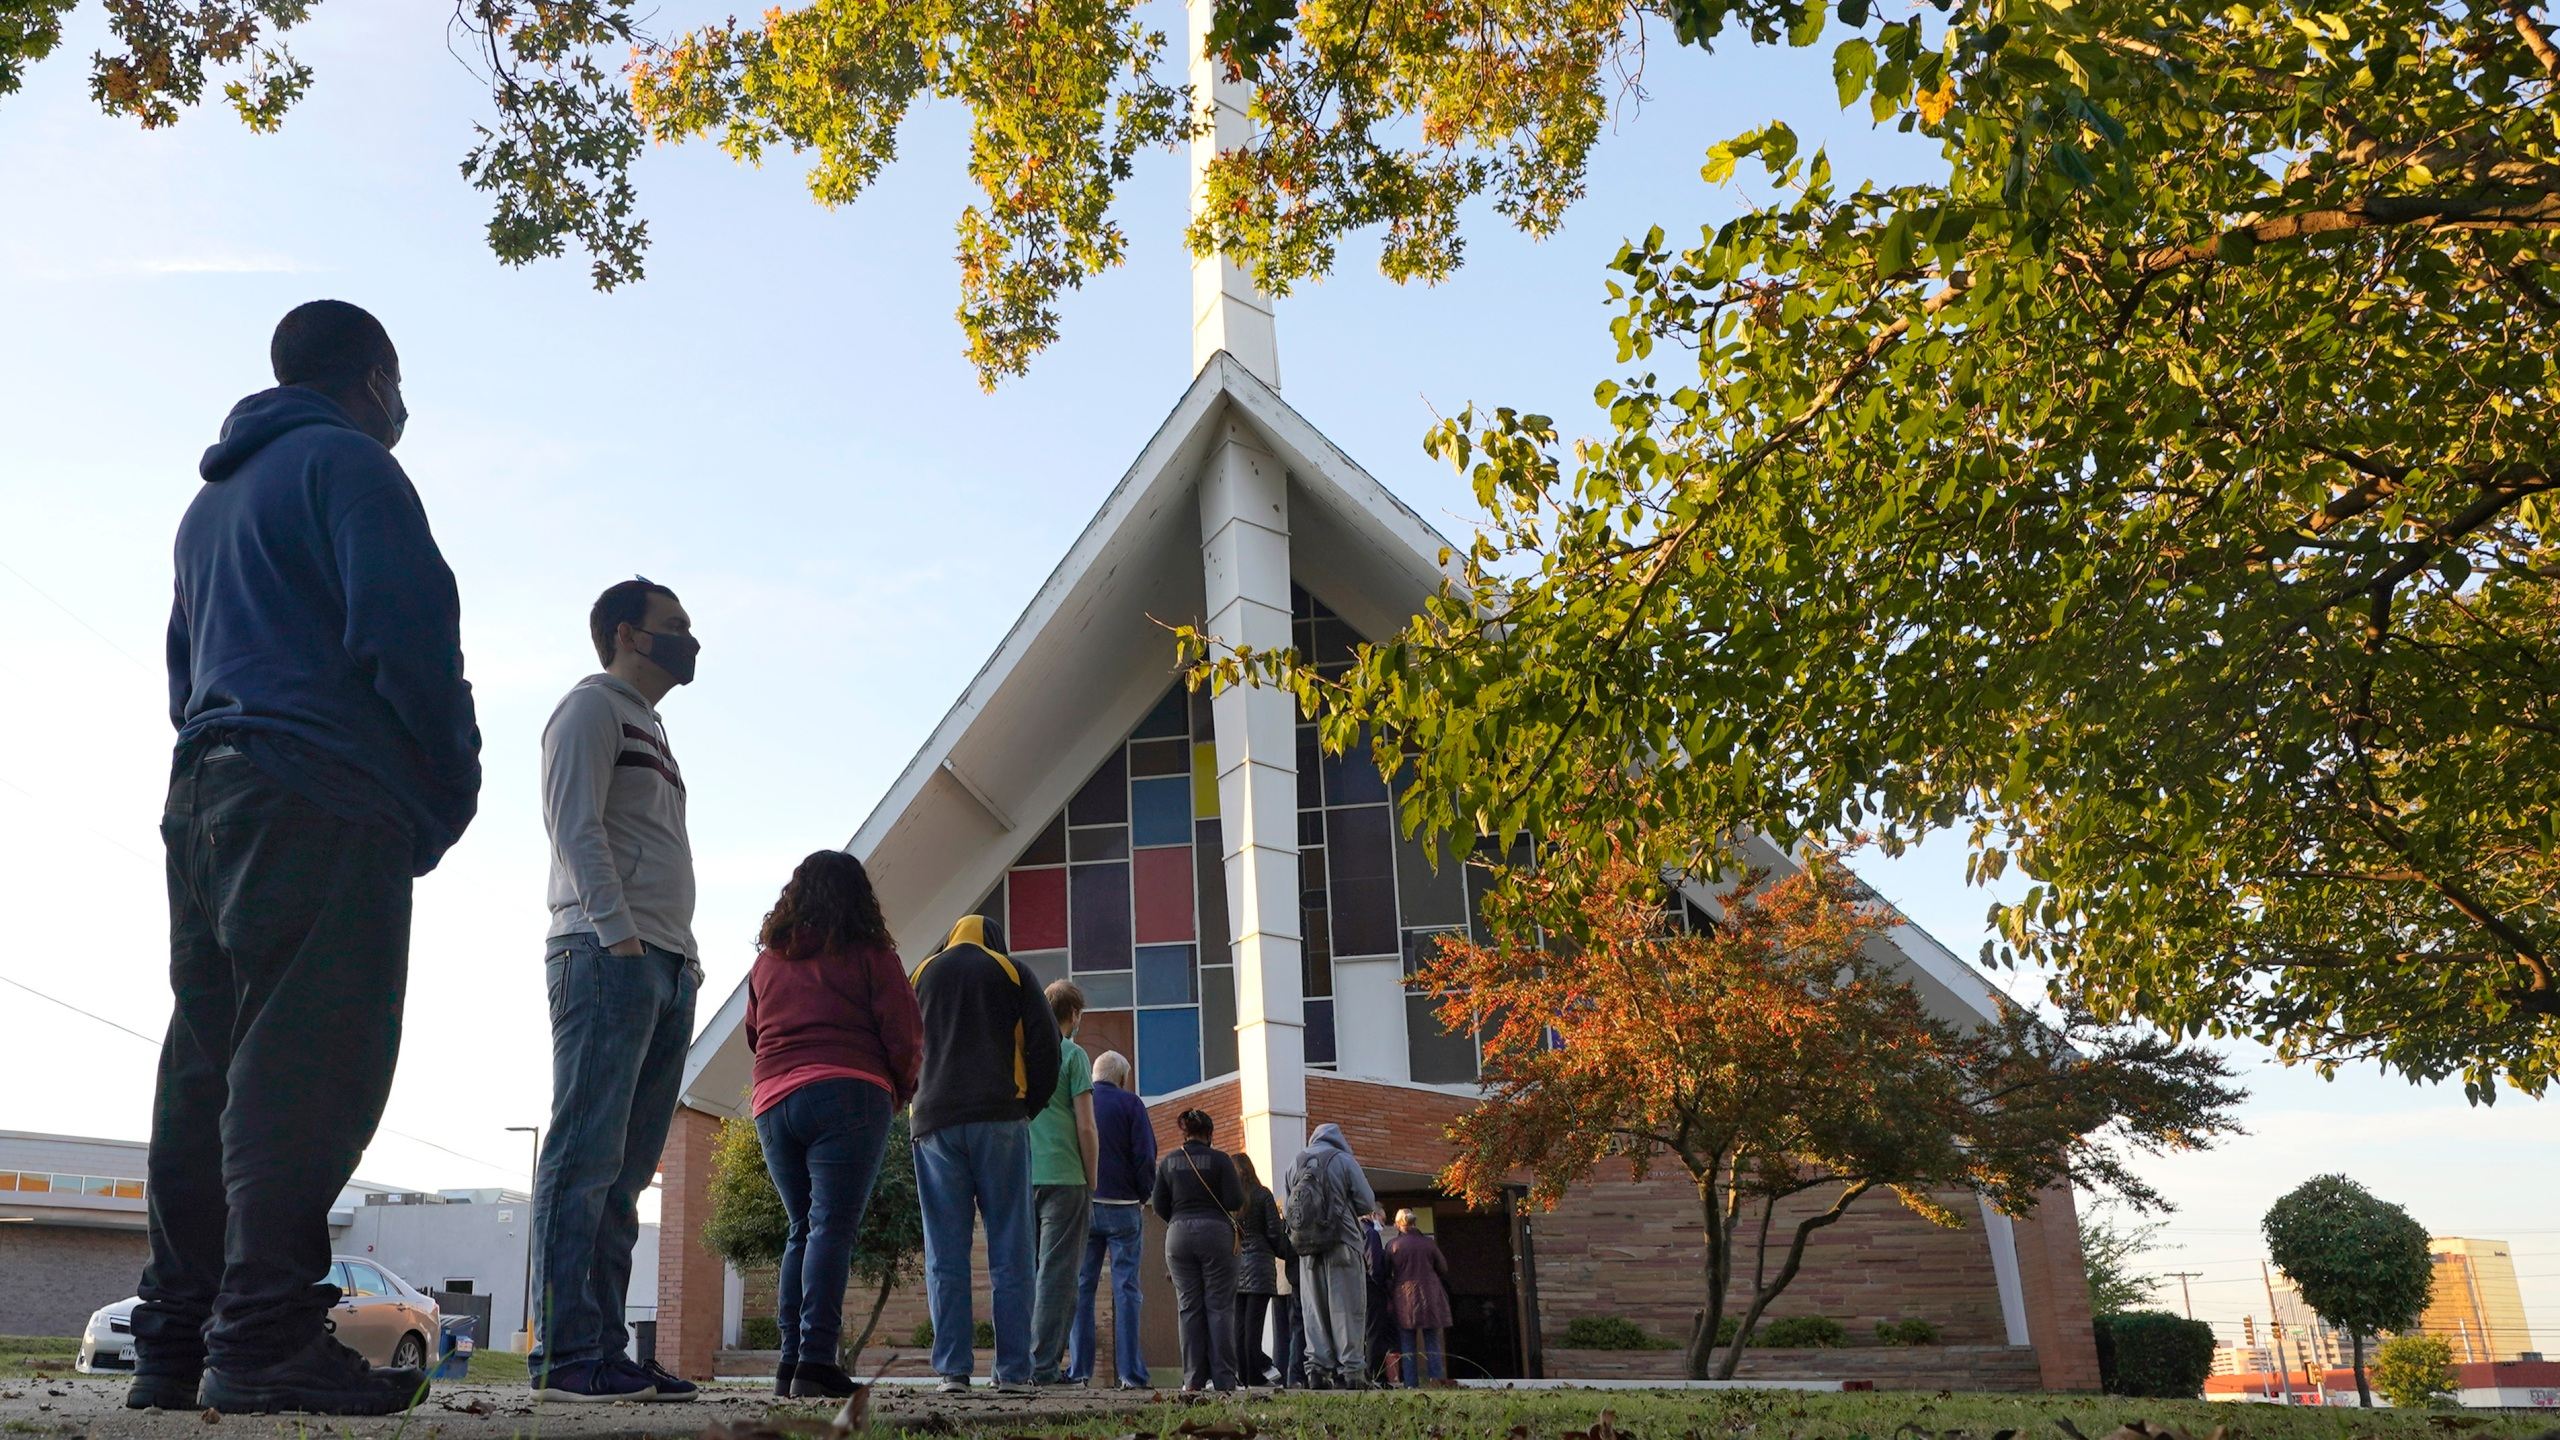 FILE - In this Tuesday, Nov. 3, 2020 file photo, Voters line up outside Vickery Baptist Church waiting to cast their ballots on Election Day in Dallas. In Georgia, faith leaders are asking corporate executives to condemn laws restricting voting access — or face a boycott. In Arizona and Texas, clergy have assembled outside the state capitols to decry what they view as voter-suppression measures targeting Black and Hispanic people. (AP Photo/LM Otero, File)